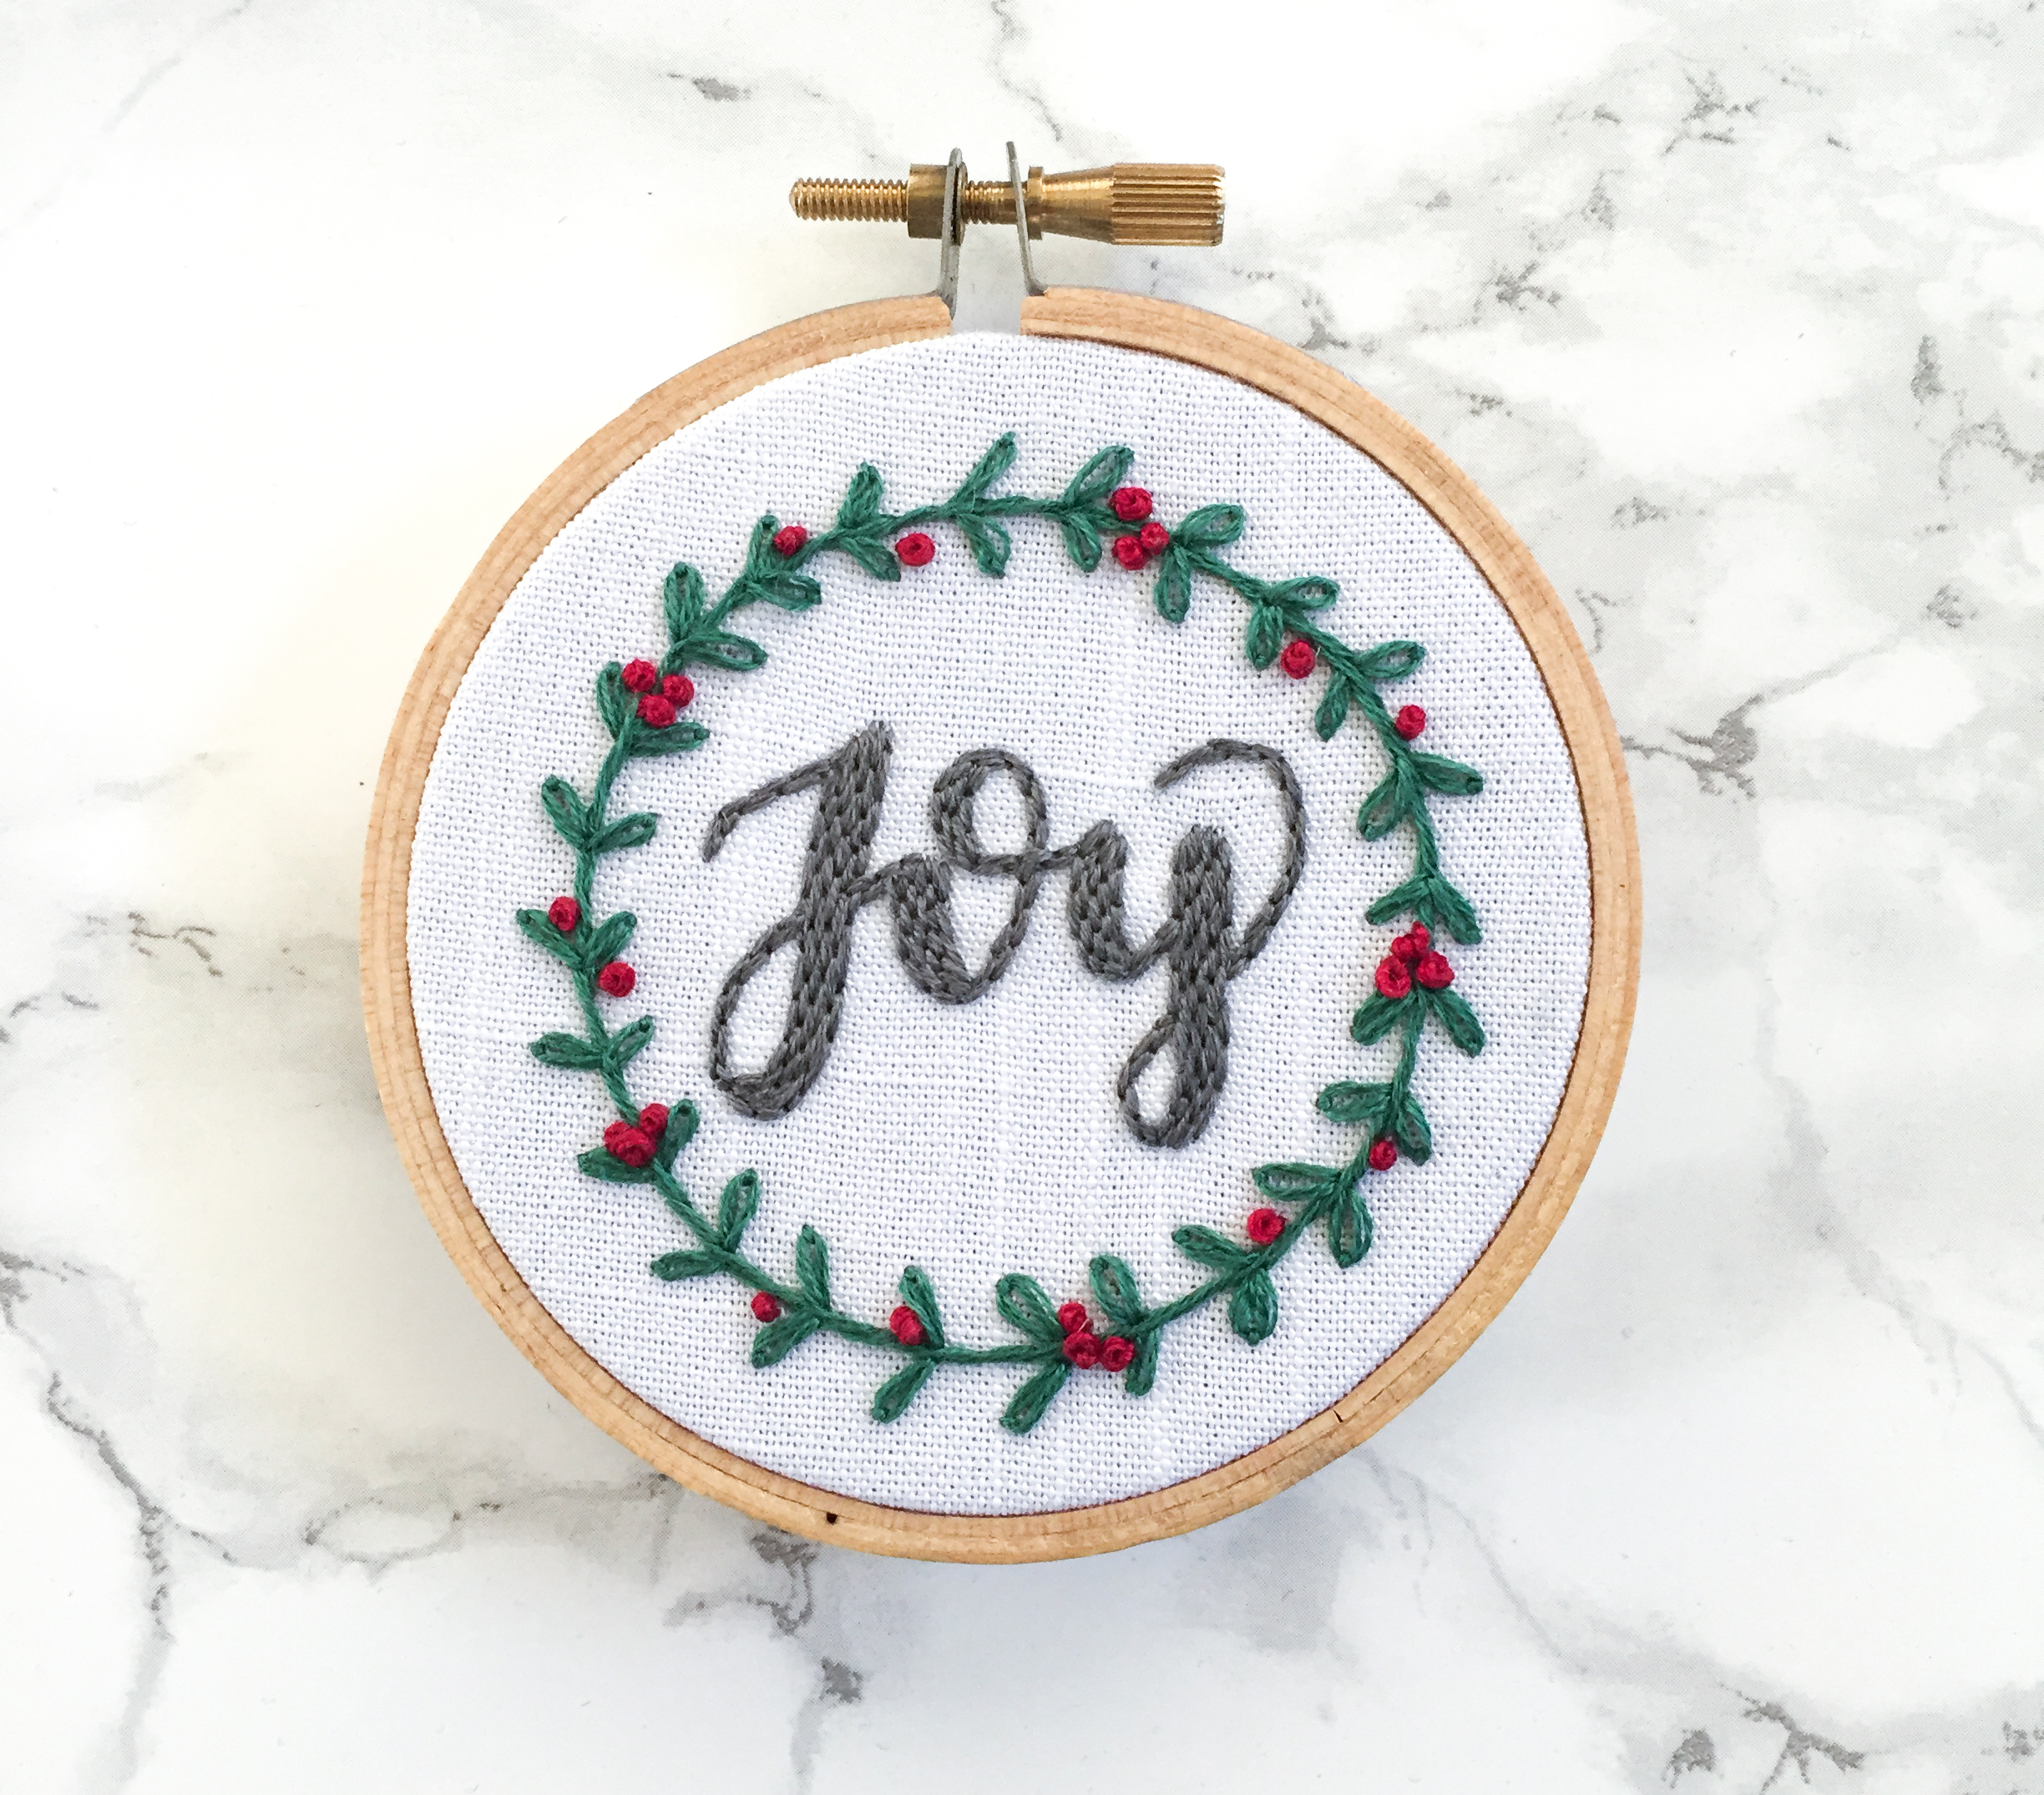 Happy stitching! - When you are working on your hoop, make sure to share your progress and final product on Instagram with #ladyscribstitches!If you have any questions, feel free to email me at hello@ladyscrib.com